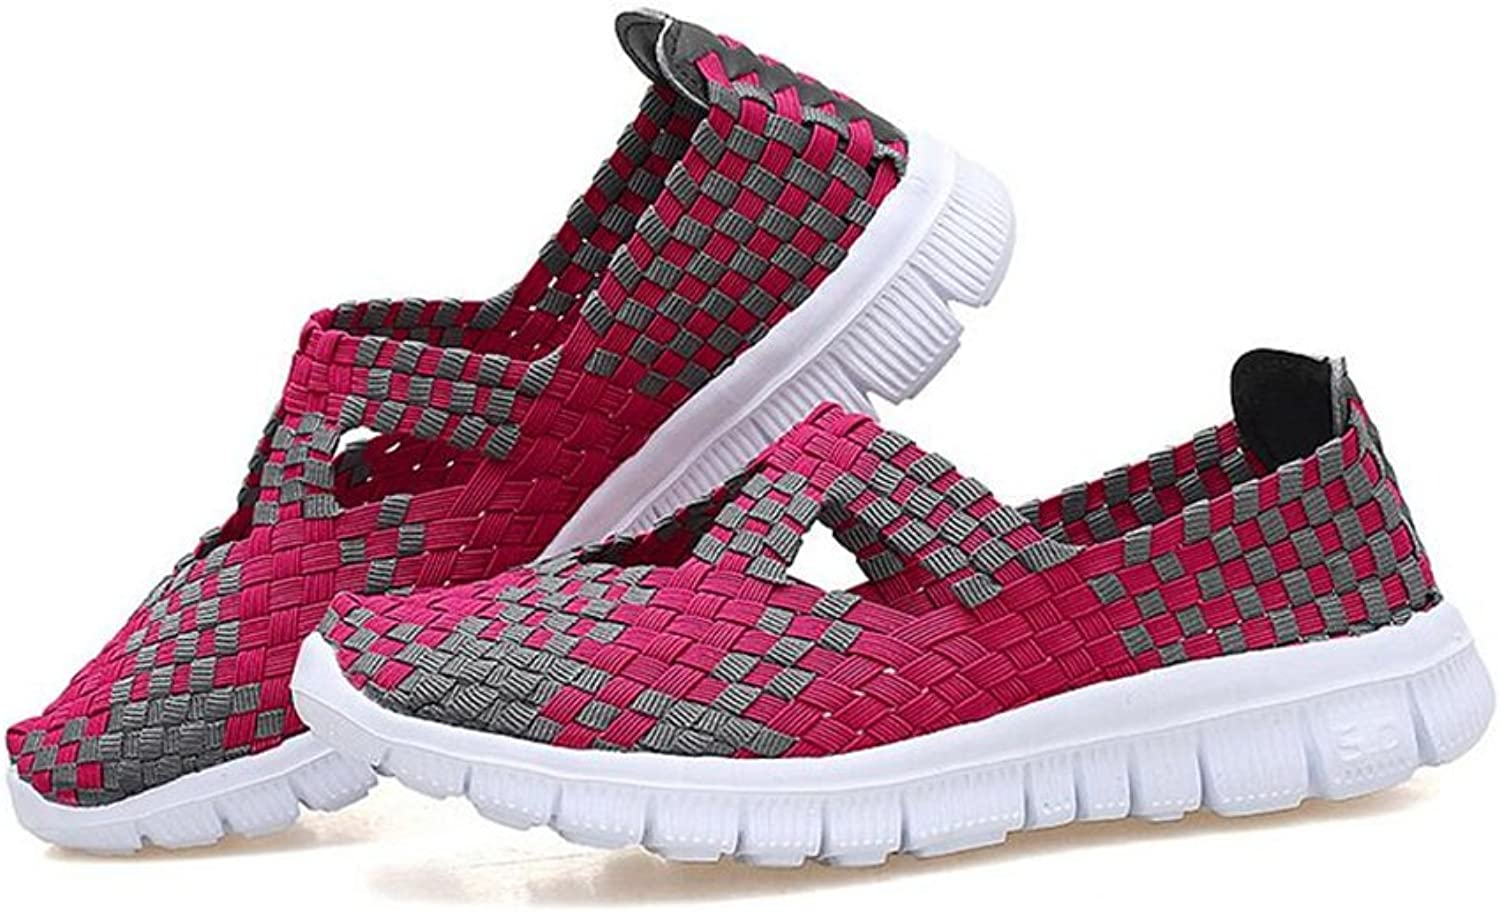 Unyielding1 Woven Elastic shoes, Rocking shoes, Mary Jane shoes